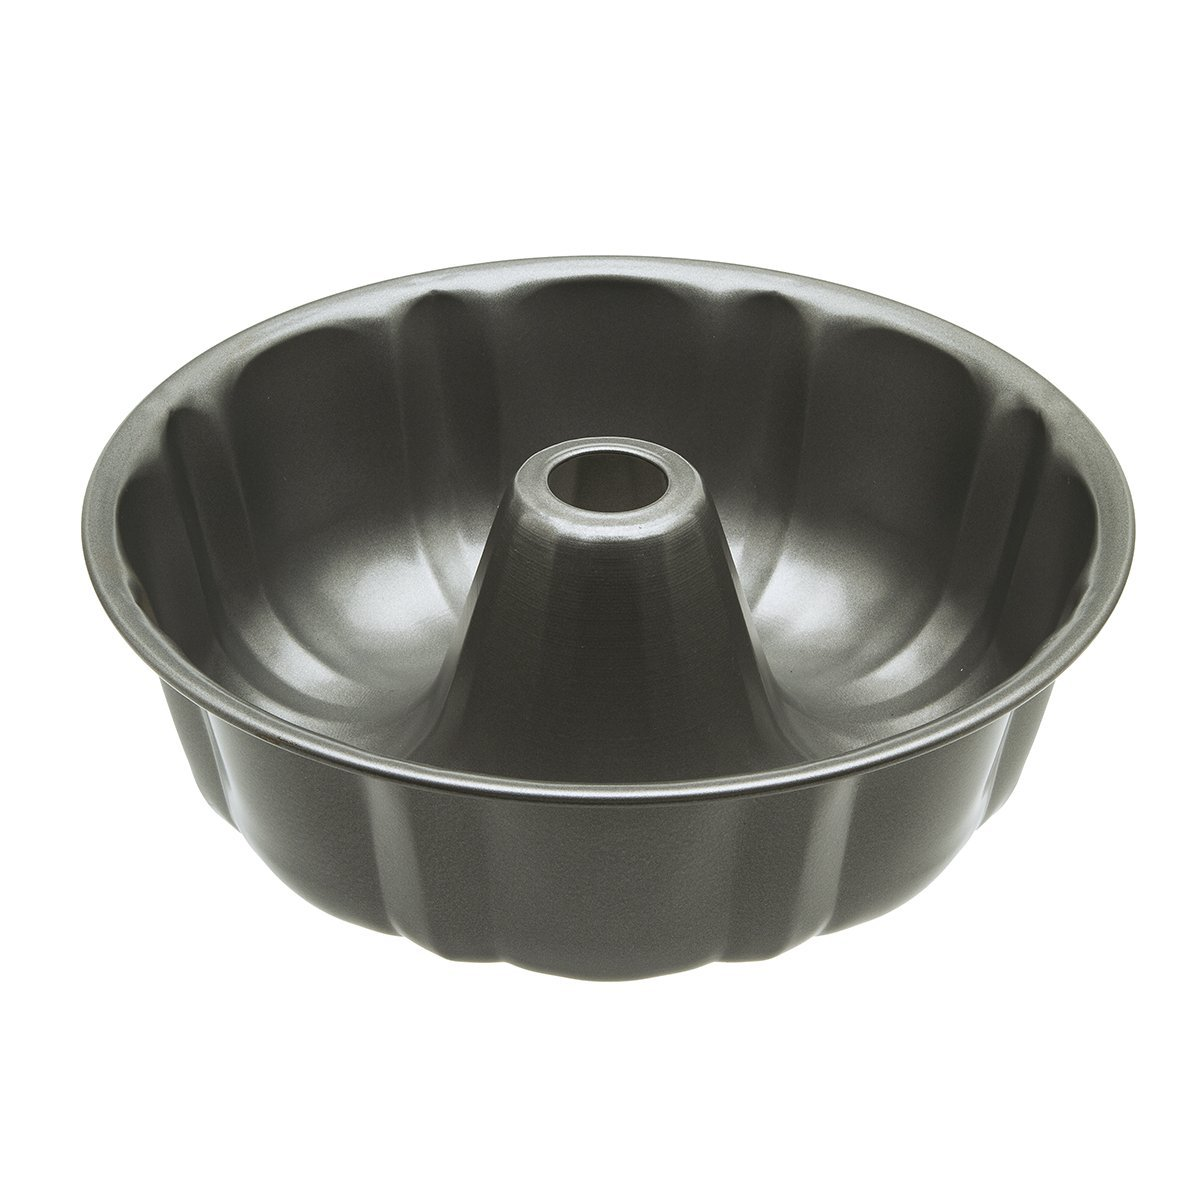 Ecolution Bakeins Fluted Tube Cake Pan - BPA, PFOA, PTFE FREE Coating